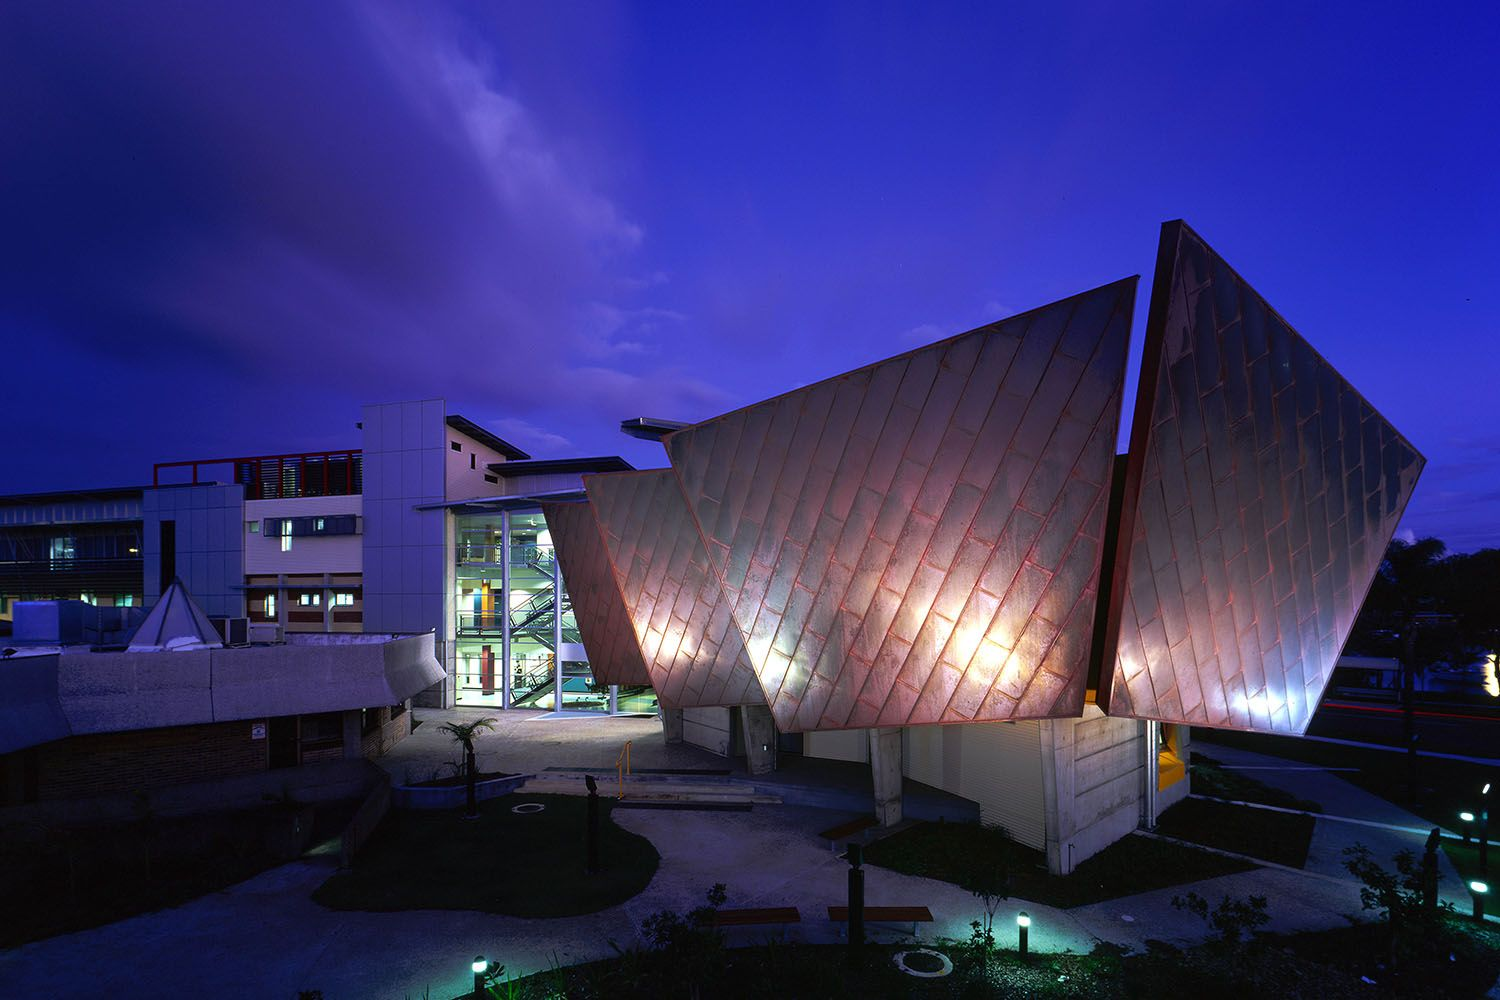 Southern cross university tweed campus #architecture #education